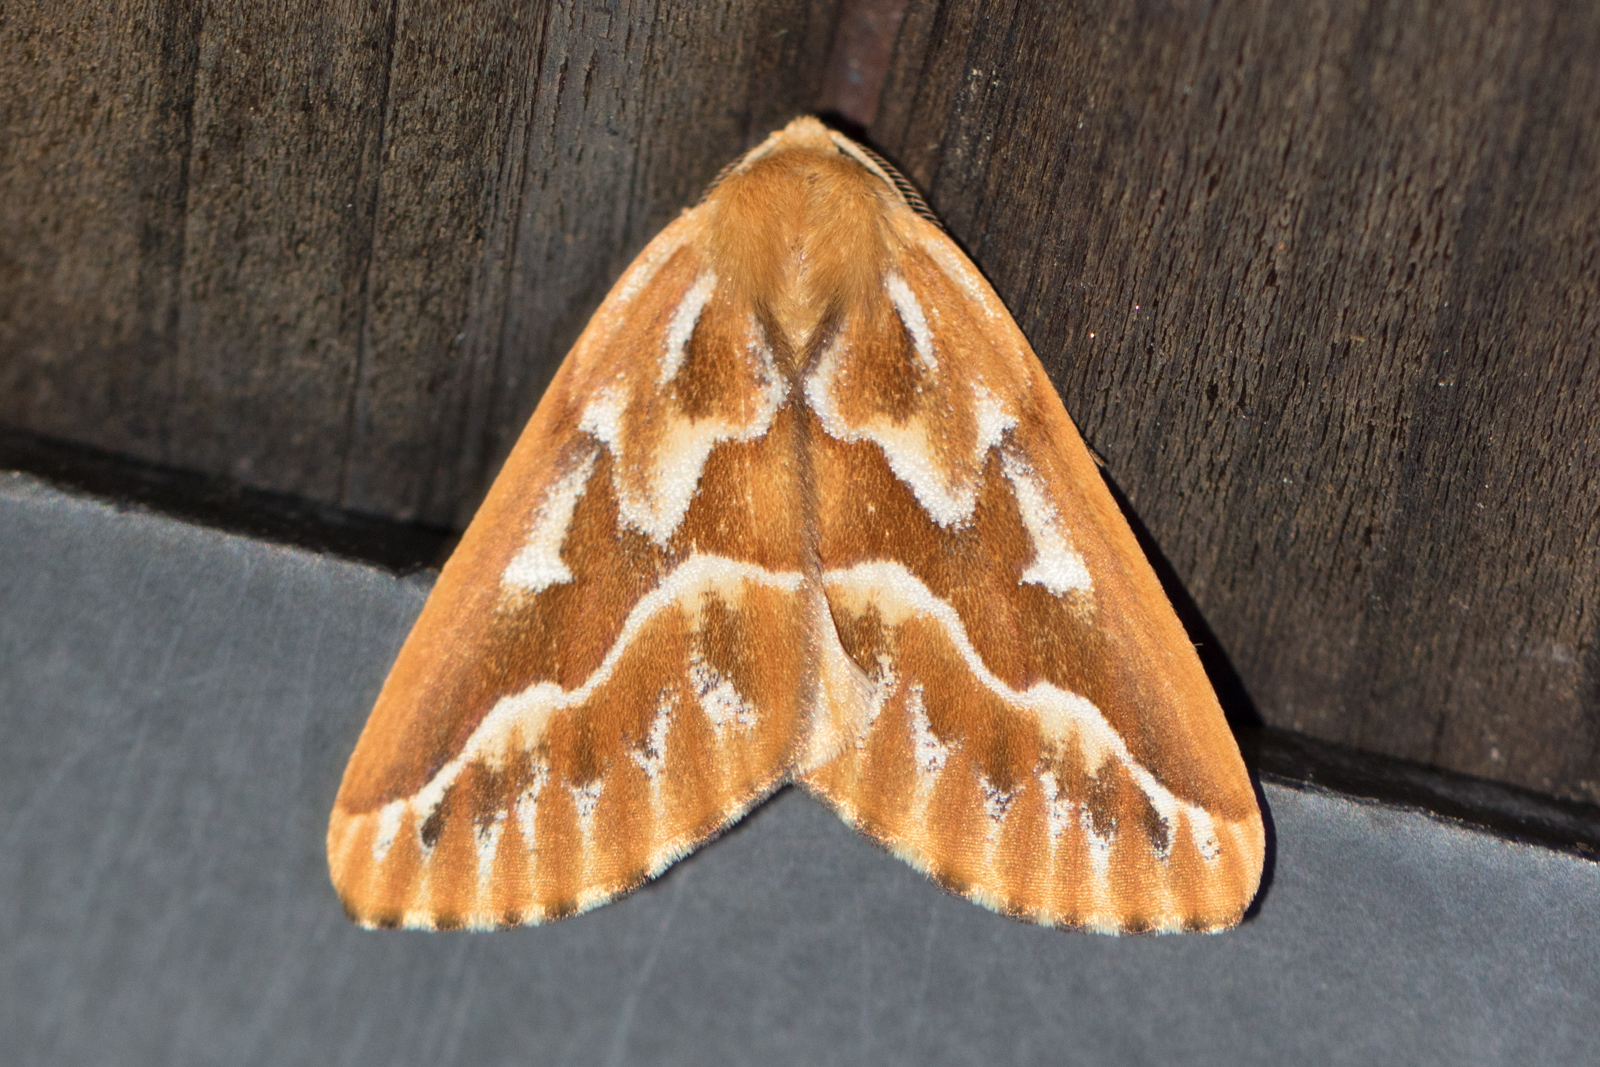 Image of Northern Pine Looper